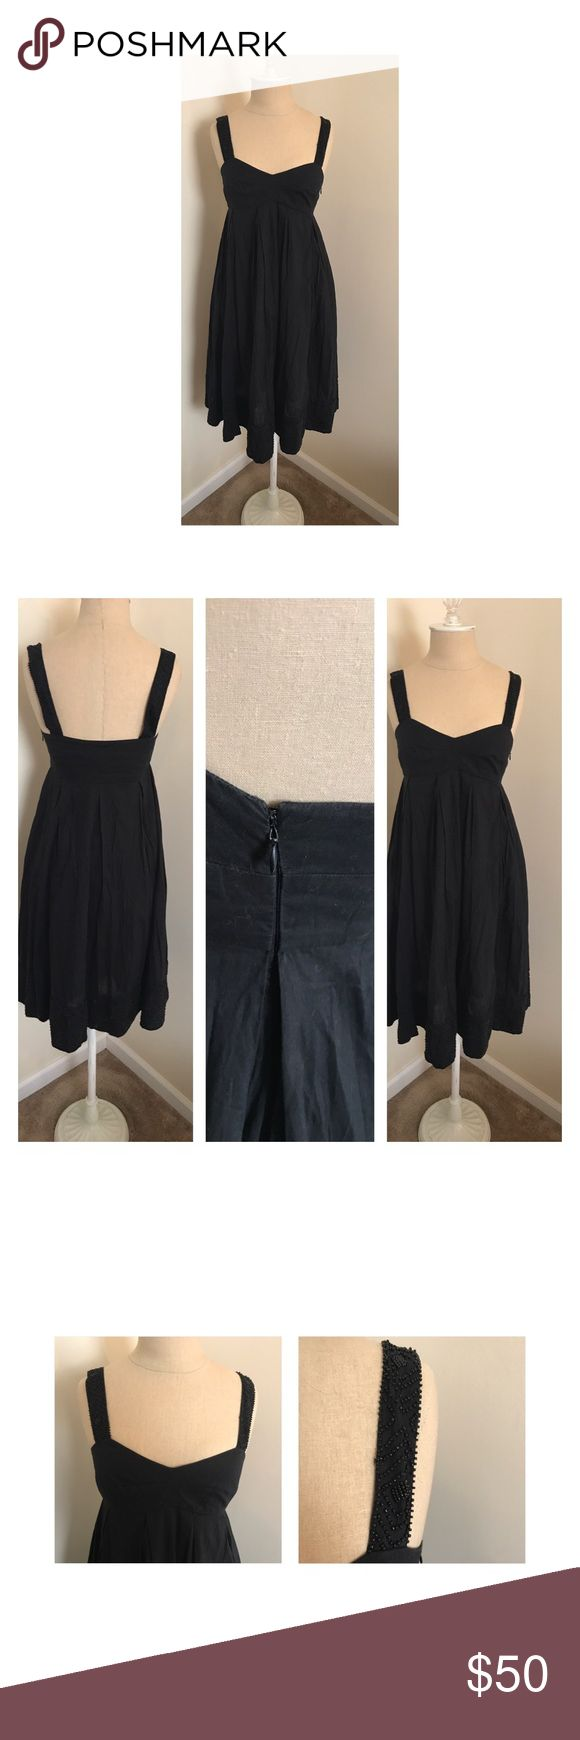 "⭐️New listing⭐️ French Connection dress 2 Lovely lightly worn black French Connection dress with beading at straps and hem. Two layers of skirt for volume. 100% cotton. Side zip. Underarm to underarm 15"", top of bust to hem 33"". French Connection Dresses"